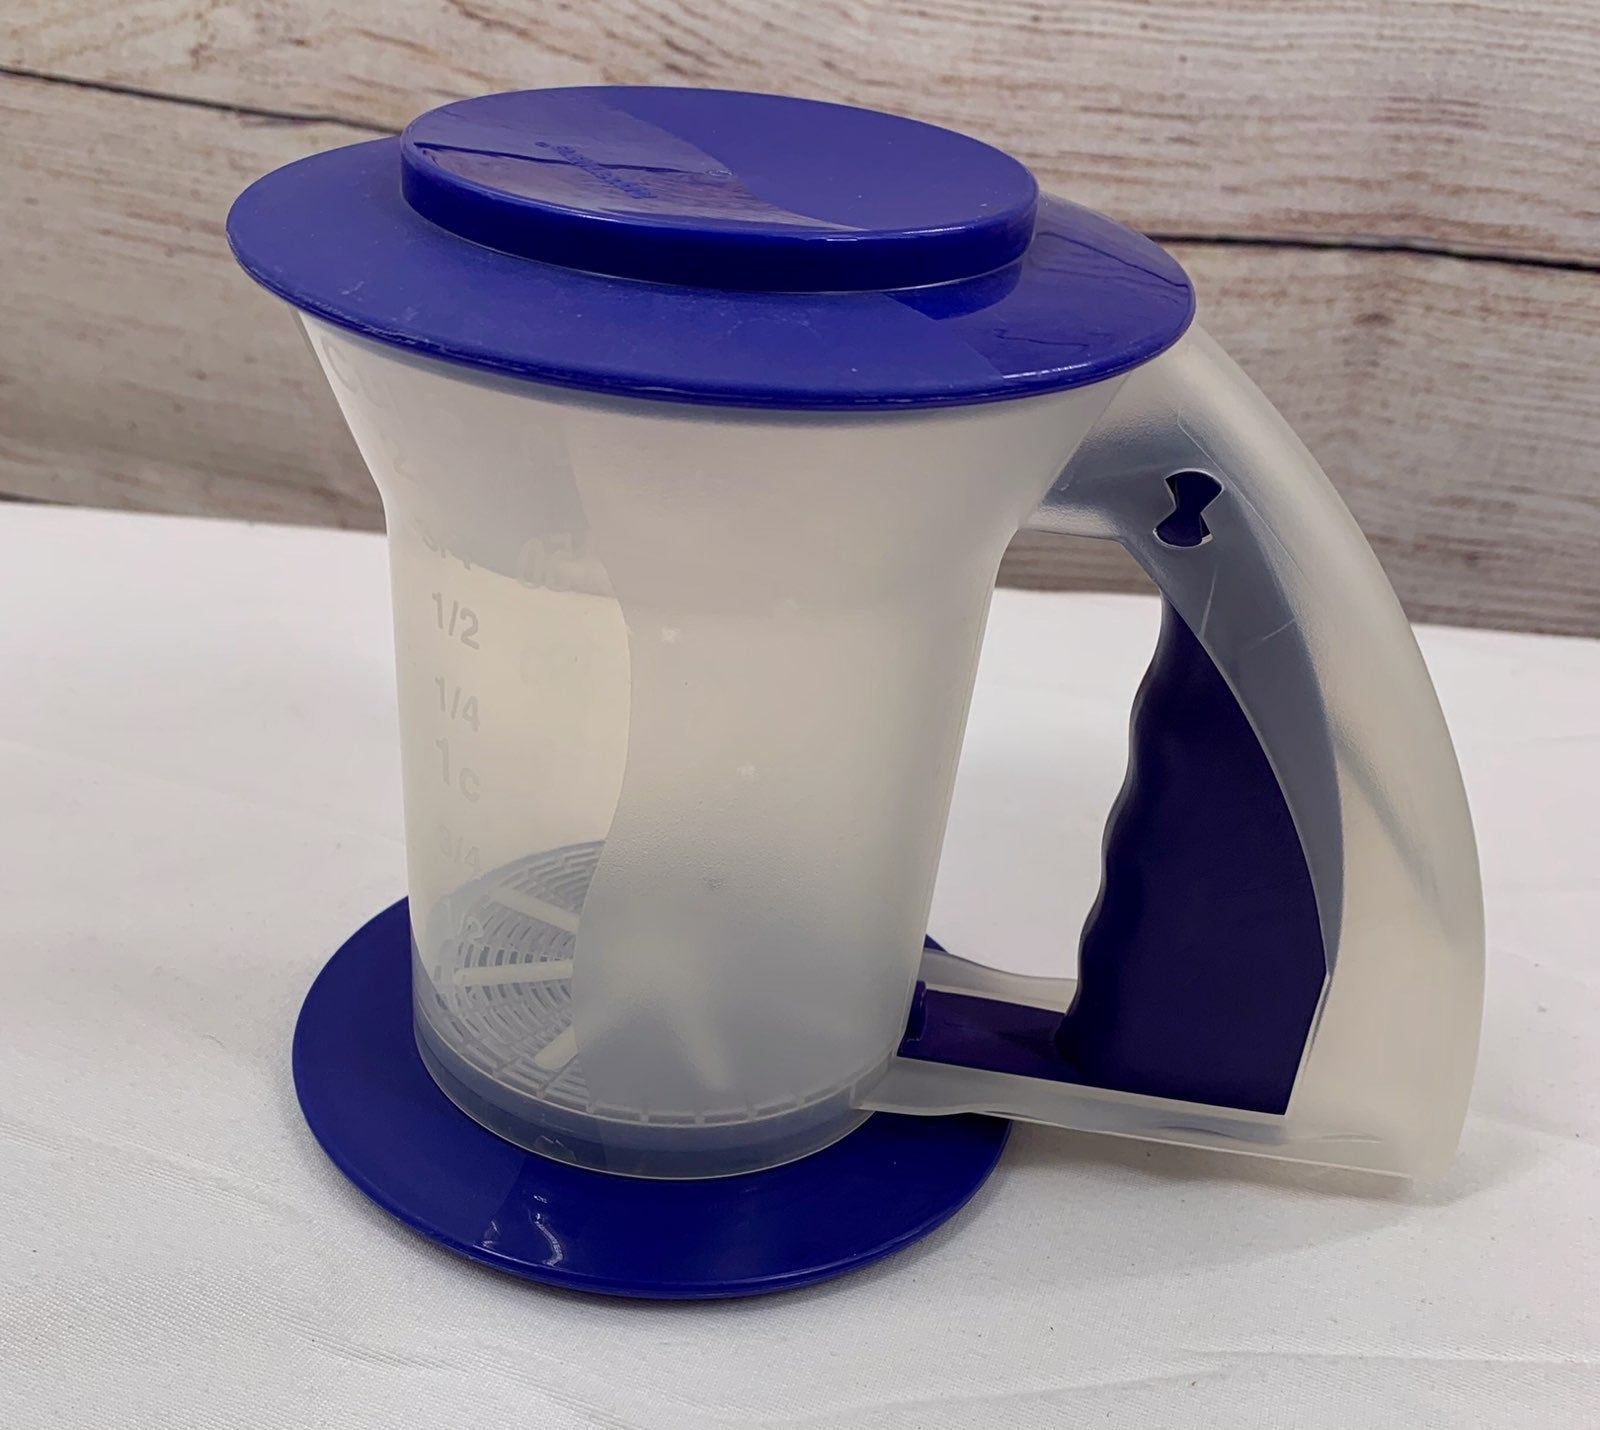 Tupperware sift and stor for sifting flo